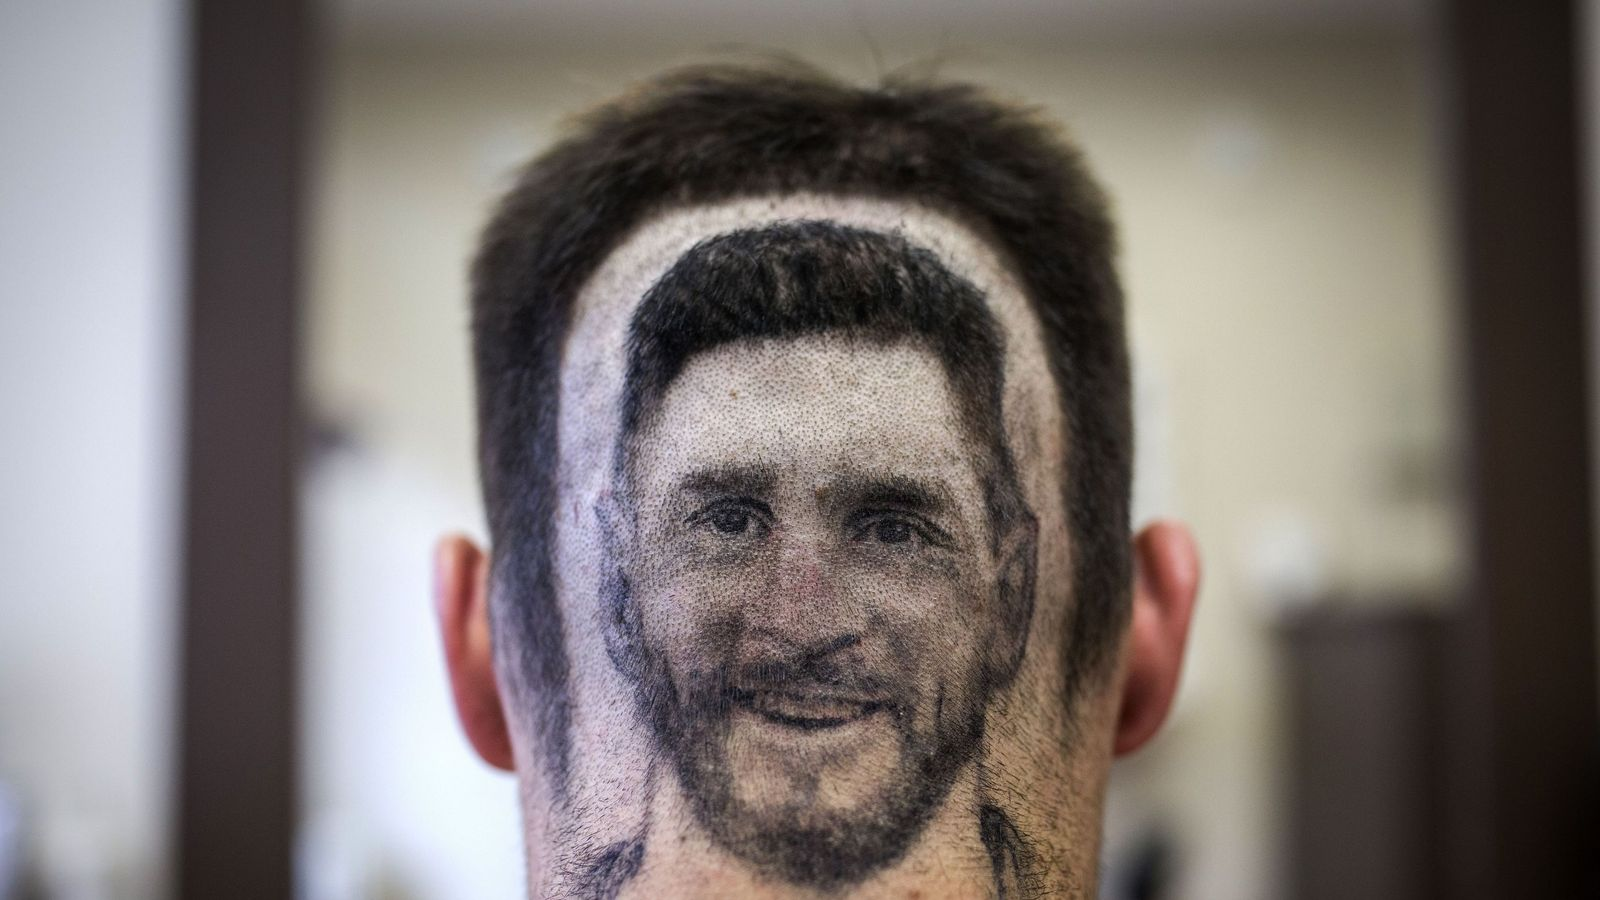 messi hair barber shaves player's